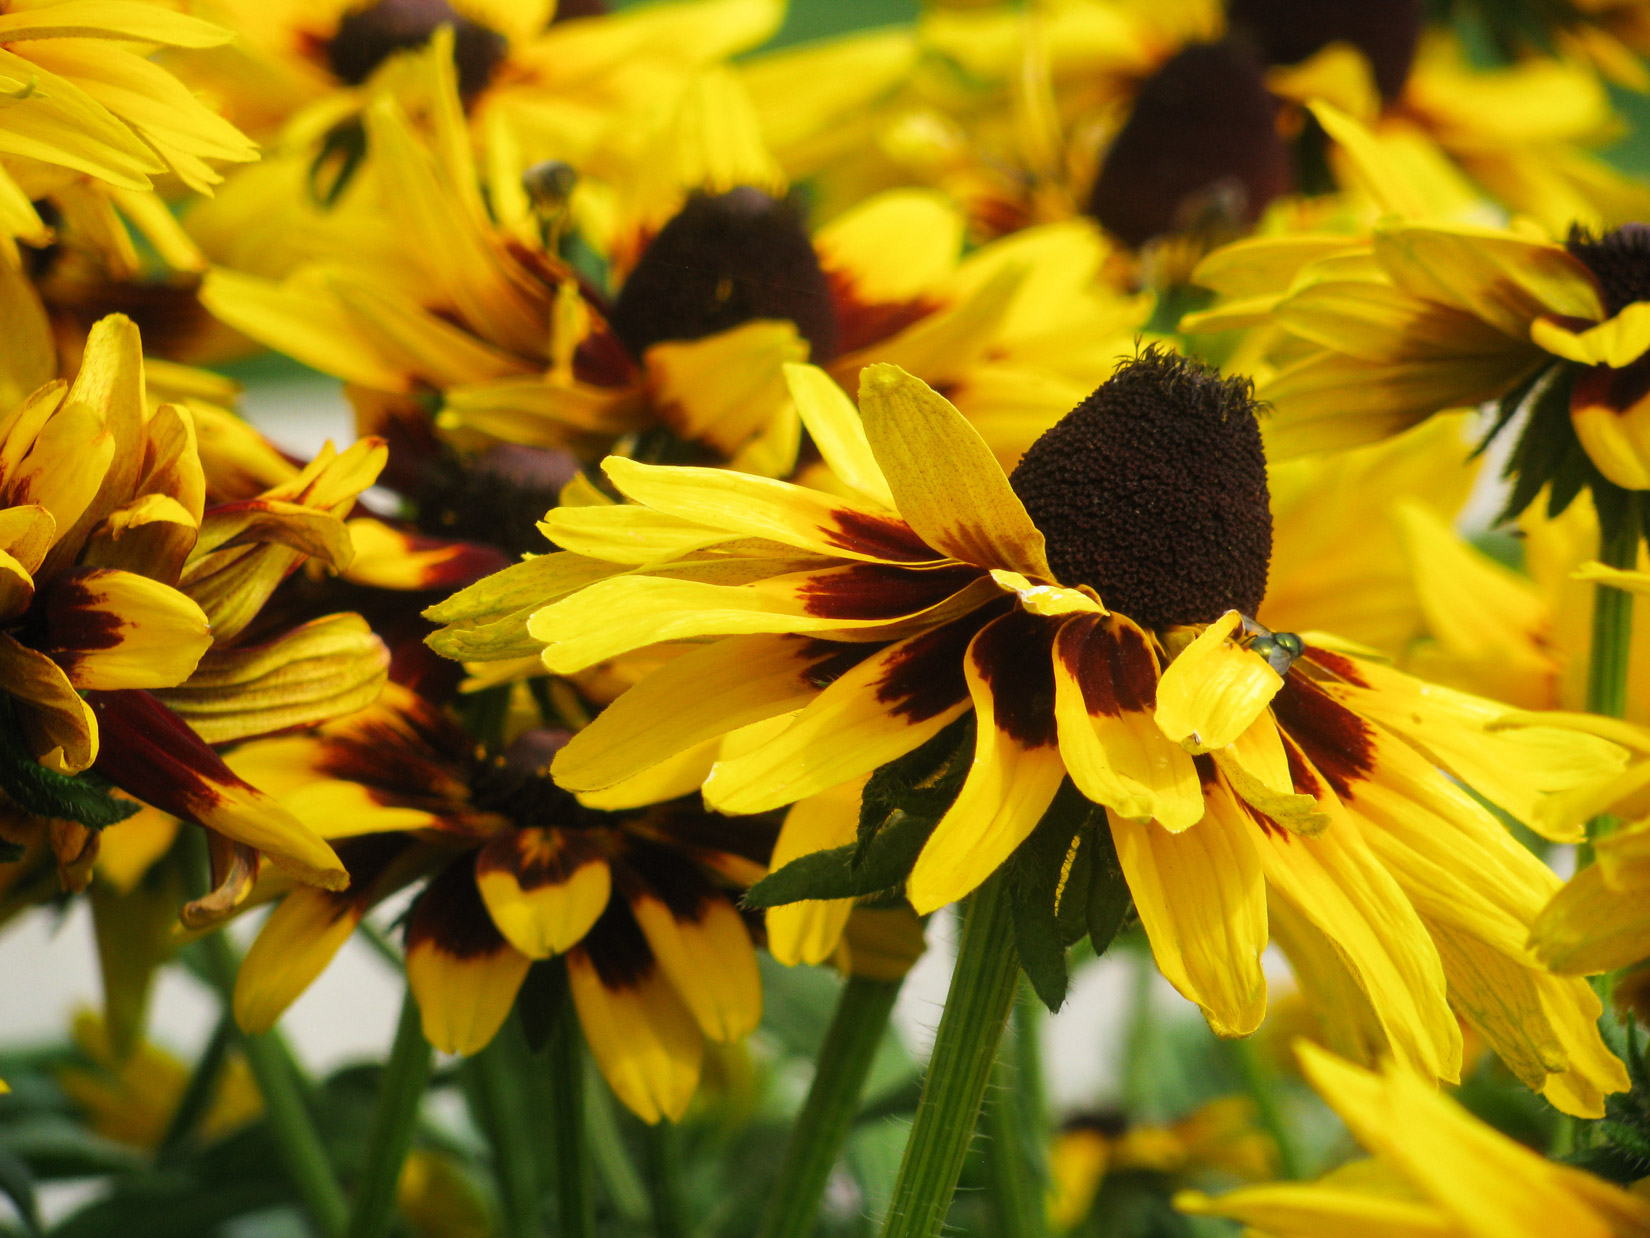 Yellow and Black Flower Petals